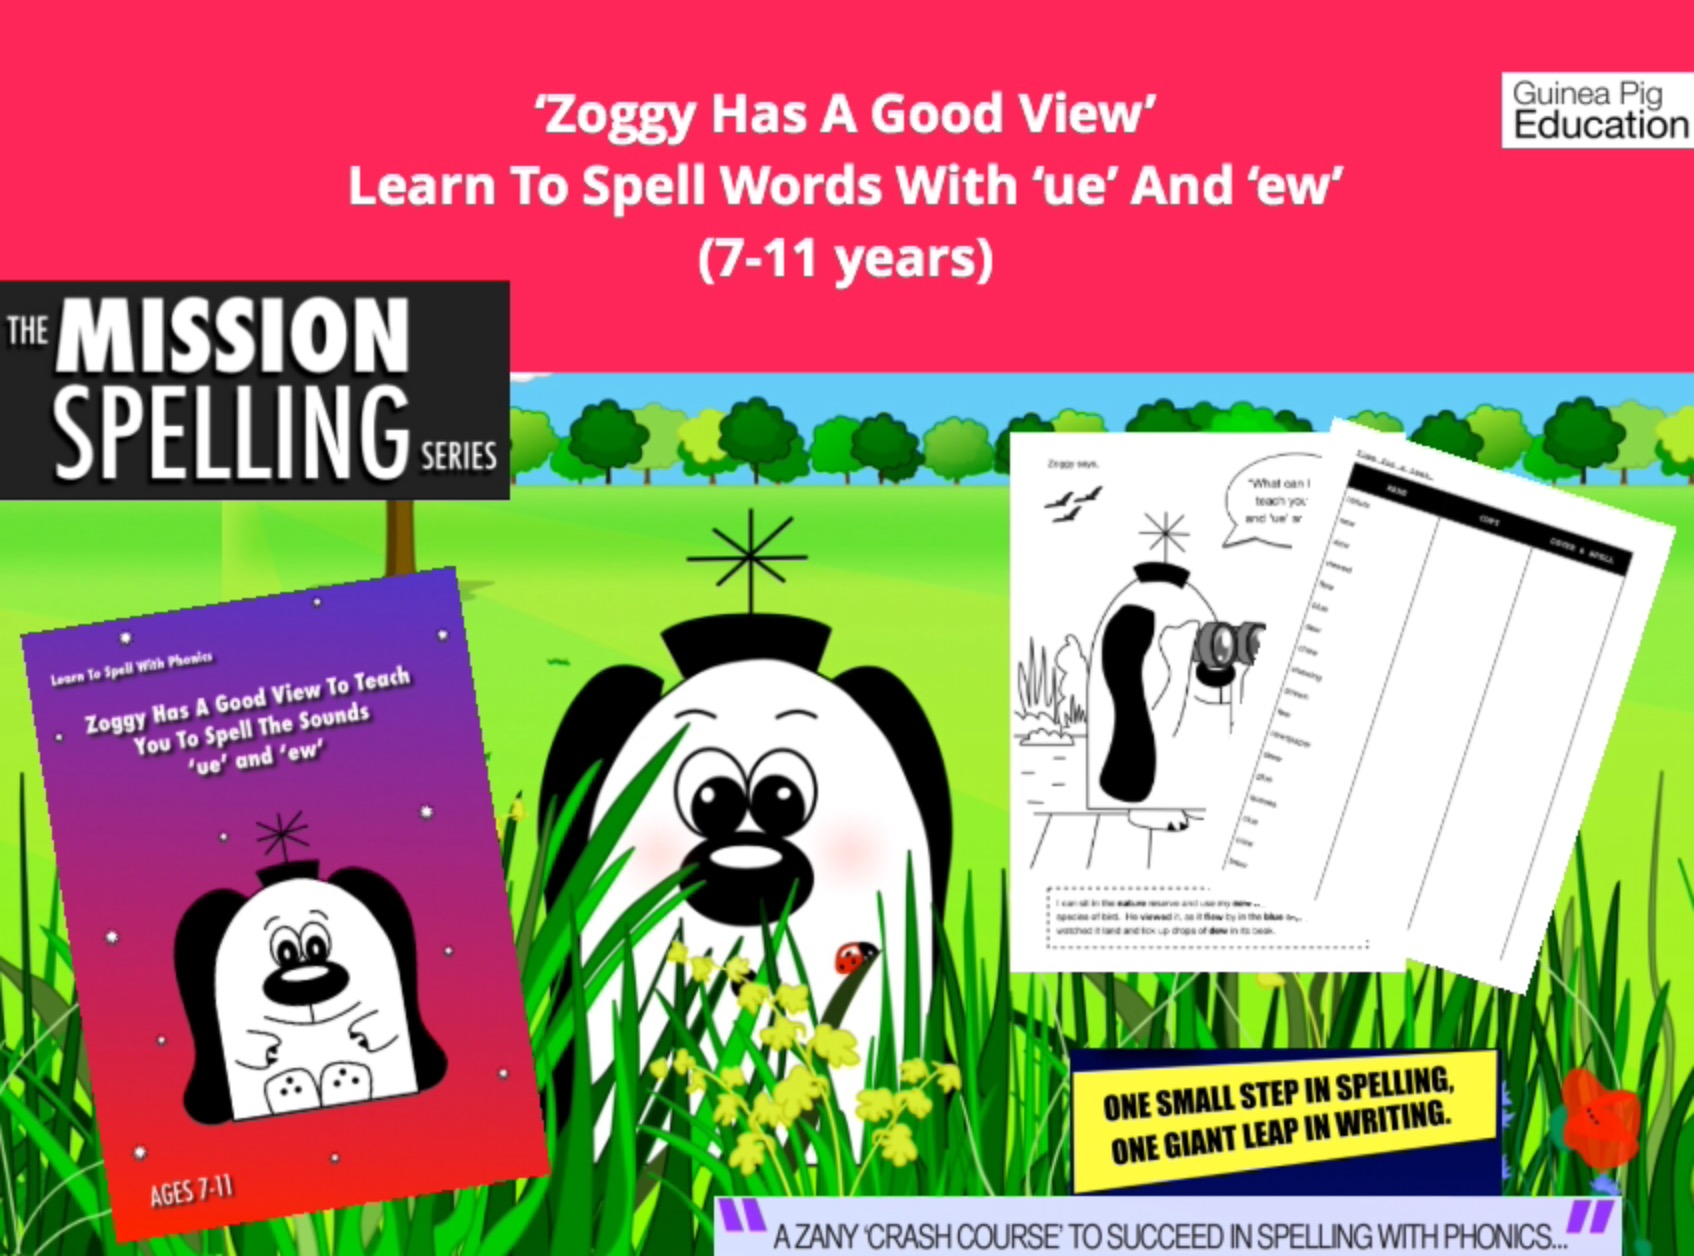 'Zoggy Has A Good View' Learn To Spell Words With 'ue' and 'ew': Learn To  Spell With Phonics (7-11) - Guinea Pig Education Shop